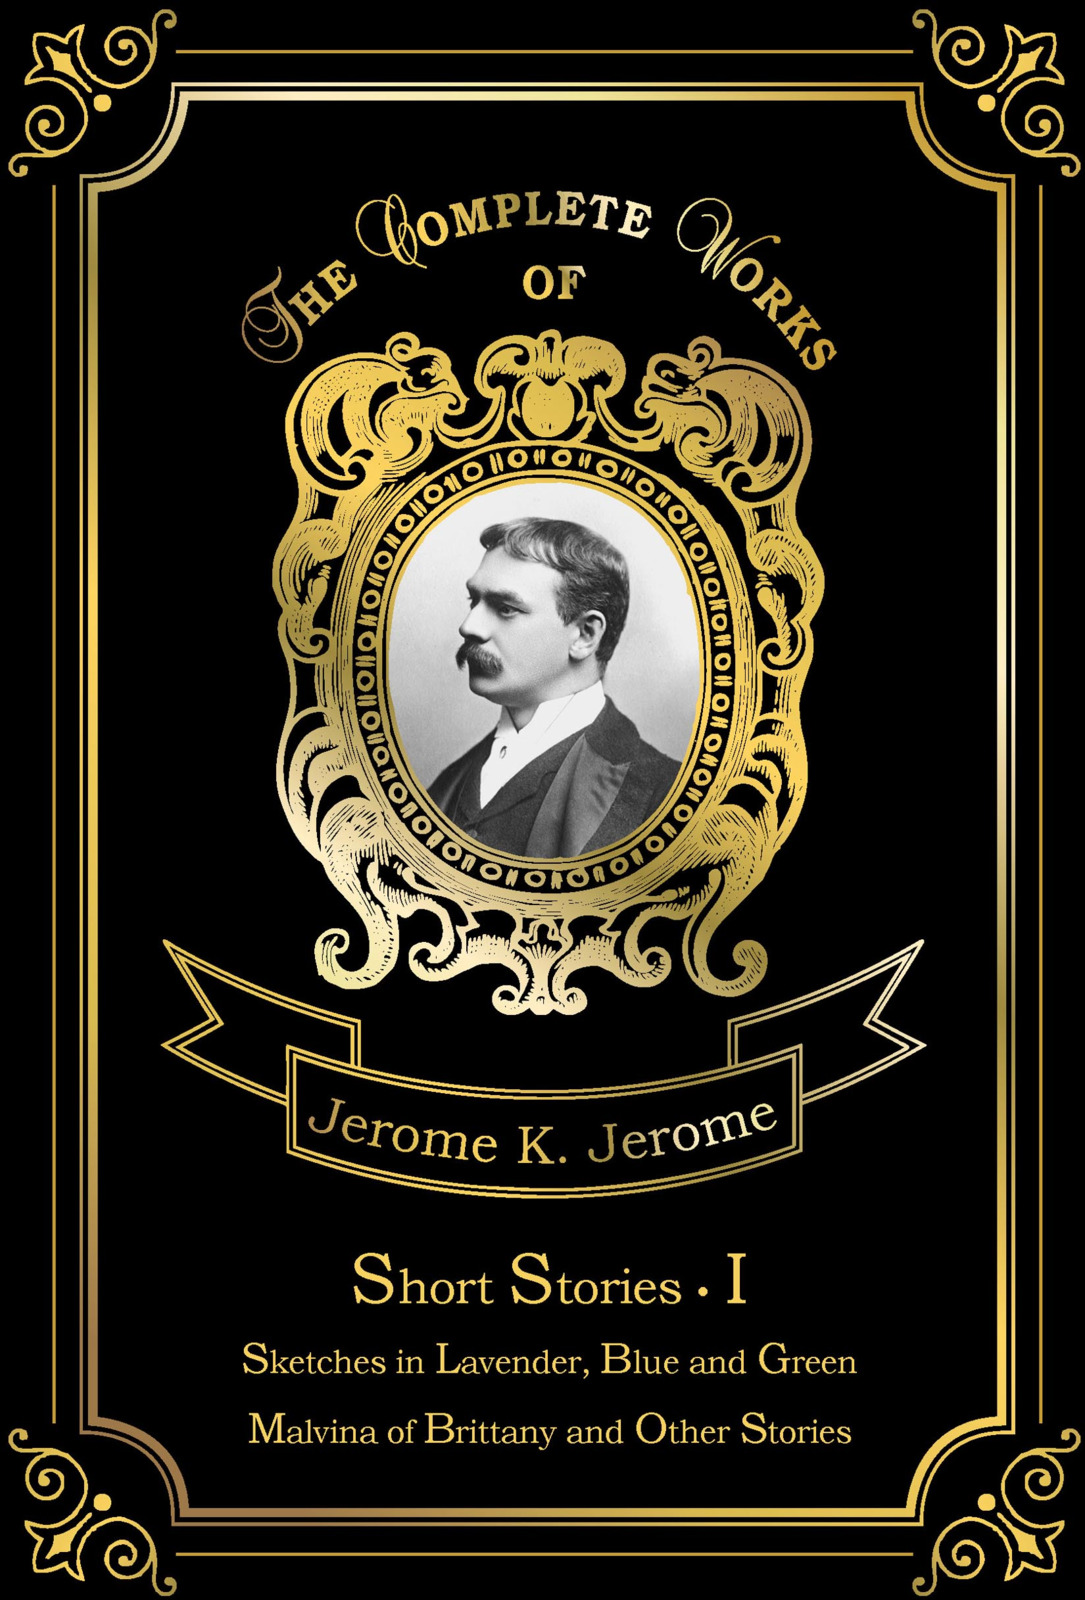 Jerome K. Jerome Short Stories I a christmas carol and other stories